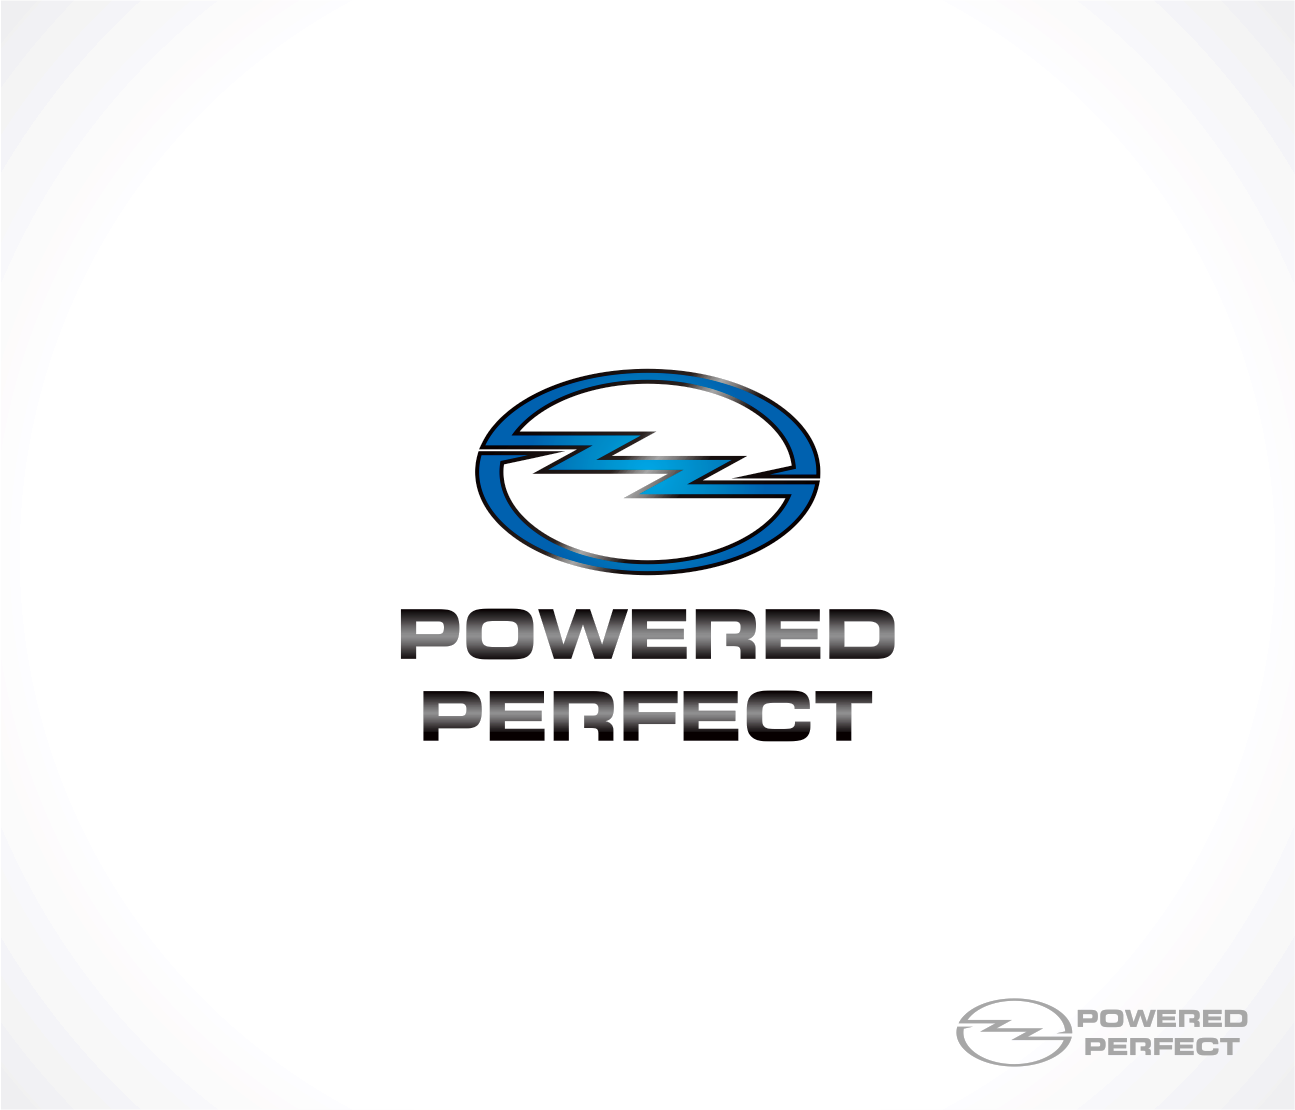 Logo Design by Armada Jamaluddin - Entry No. 24 in the Logo Design Contest Captivating Logo Design for Powered Perfect.